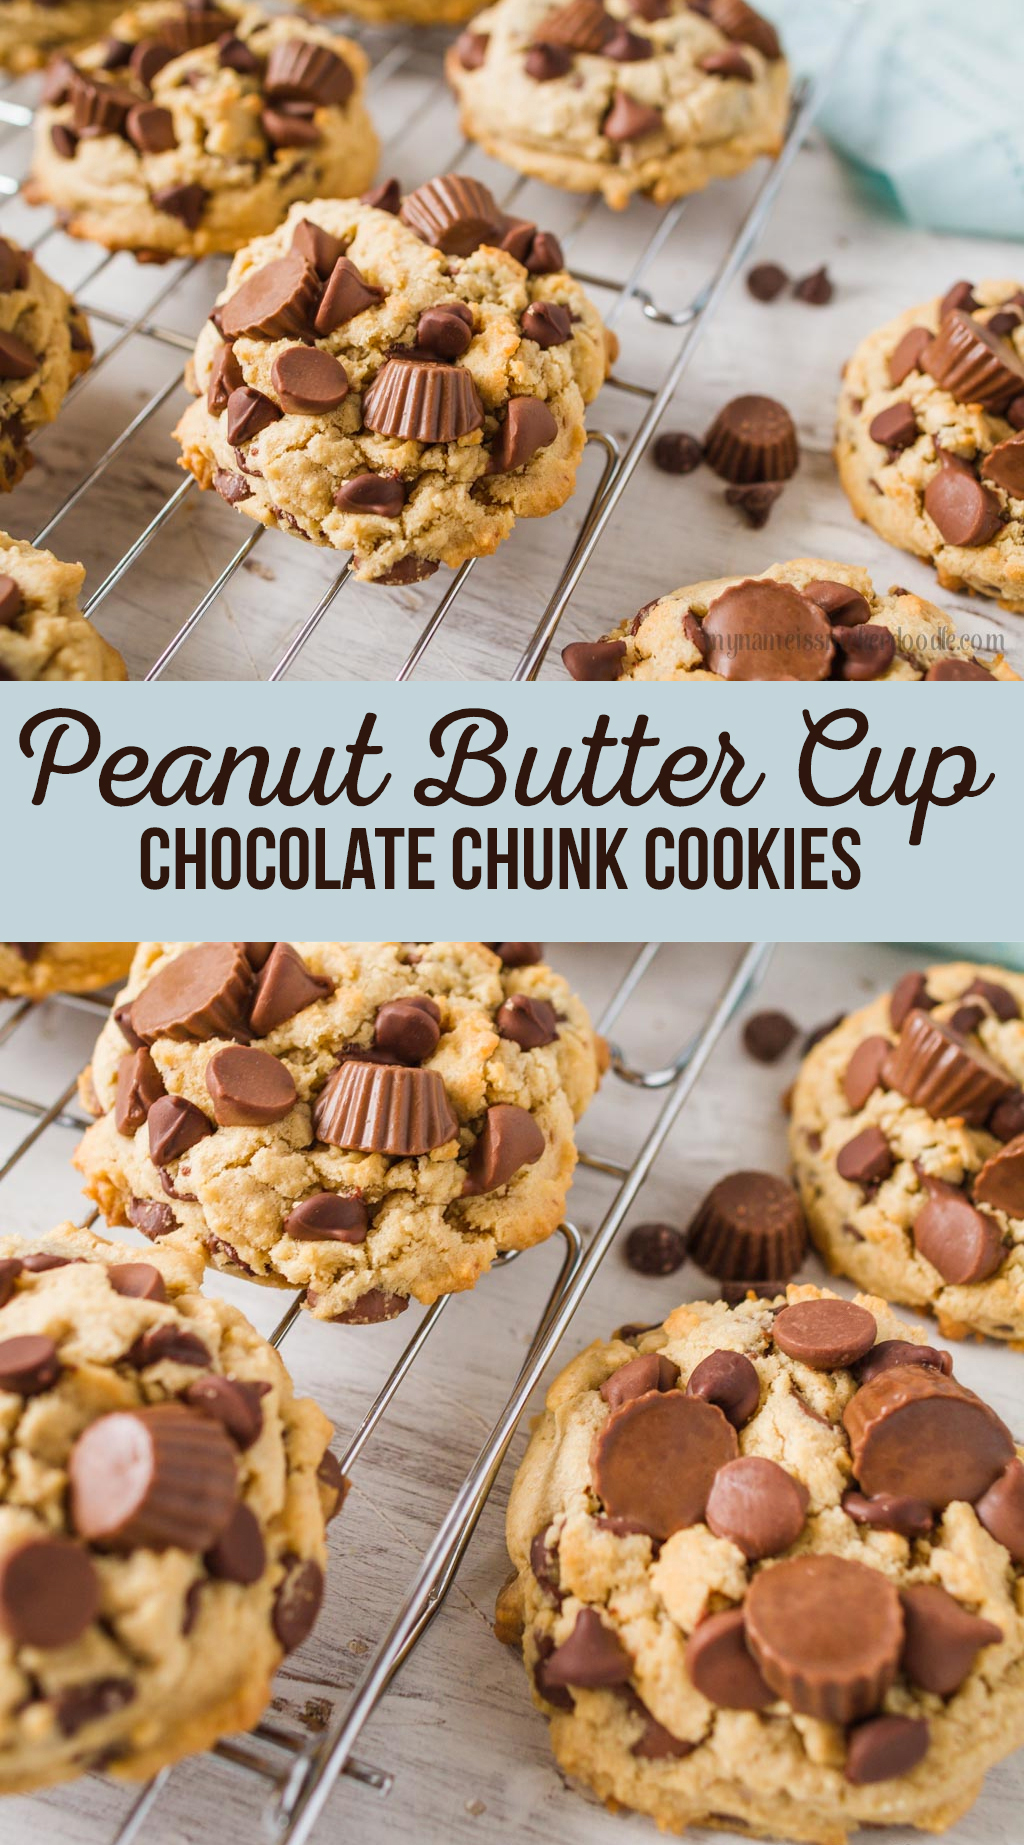 Peanut Butter Cup Chocolate Chunk Cookies